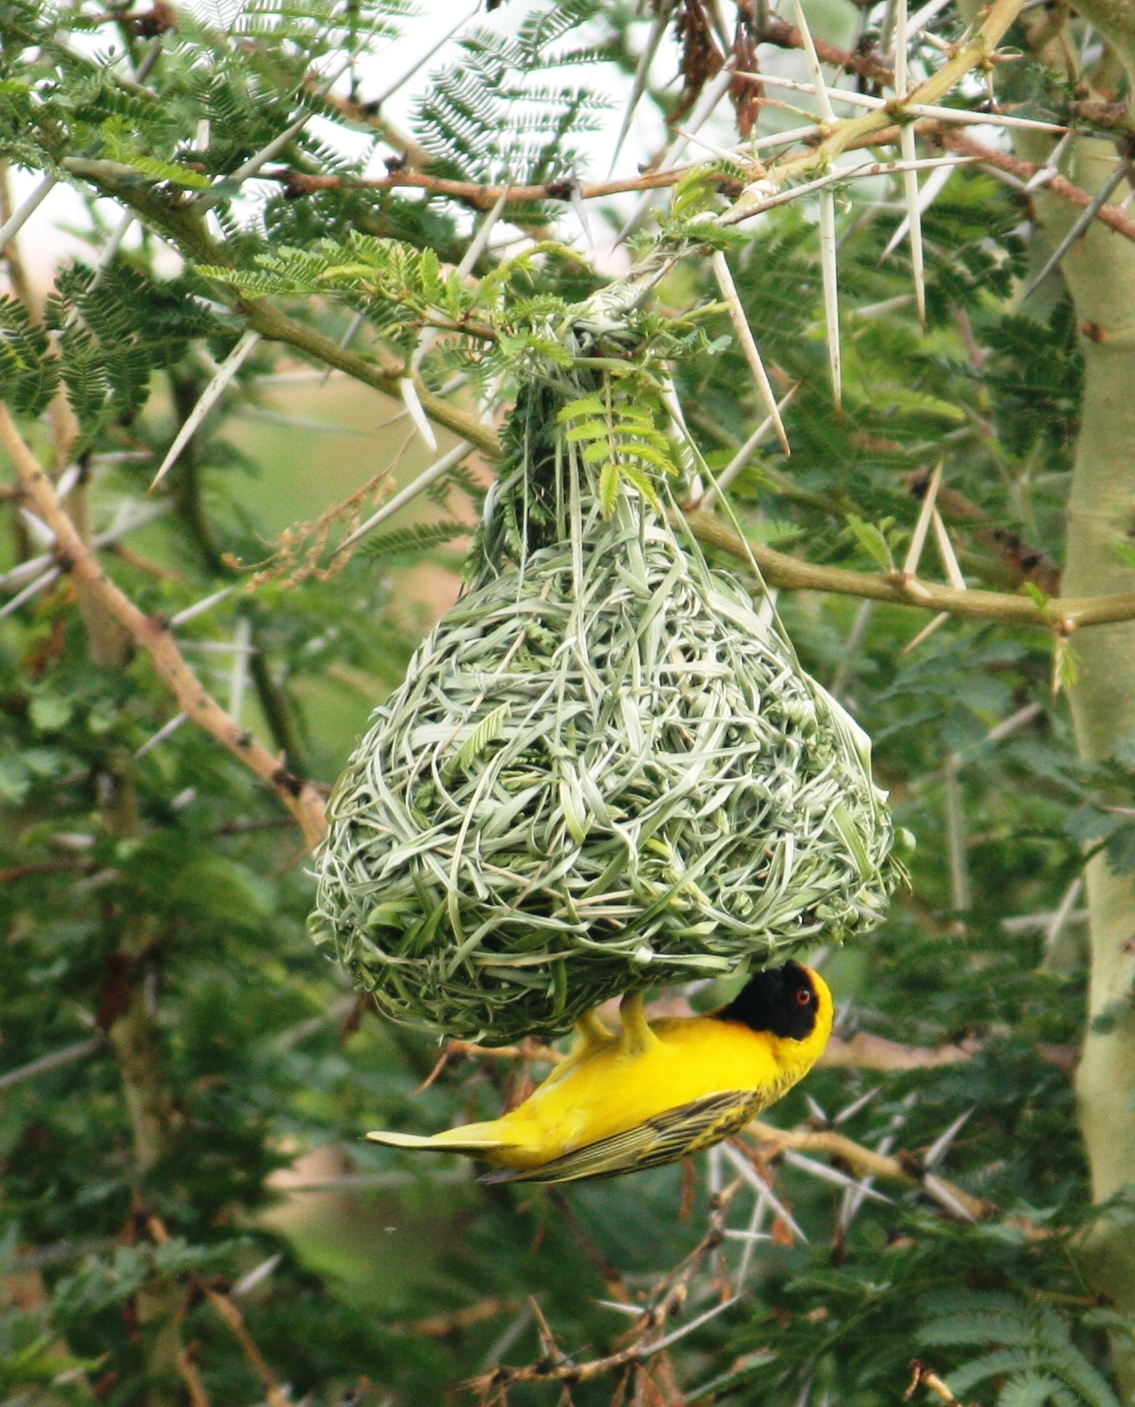 Weaver bird nest pictures - photo#1